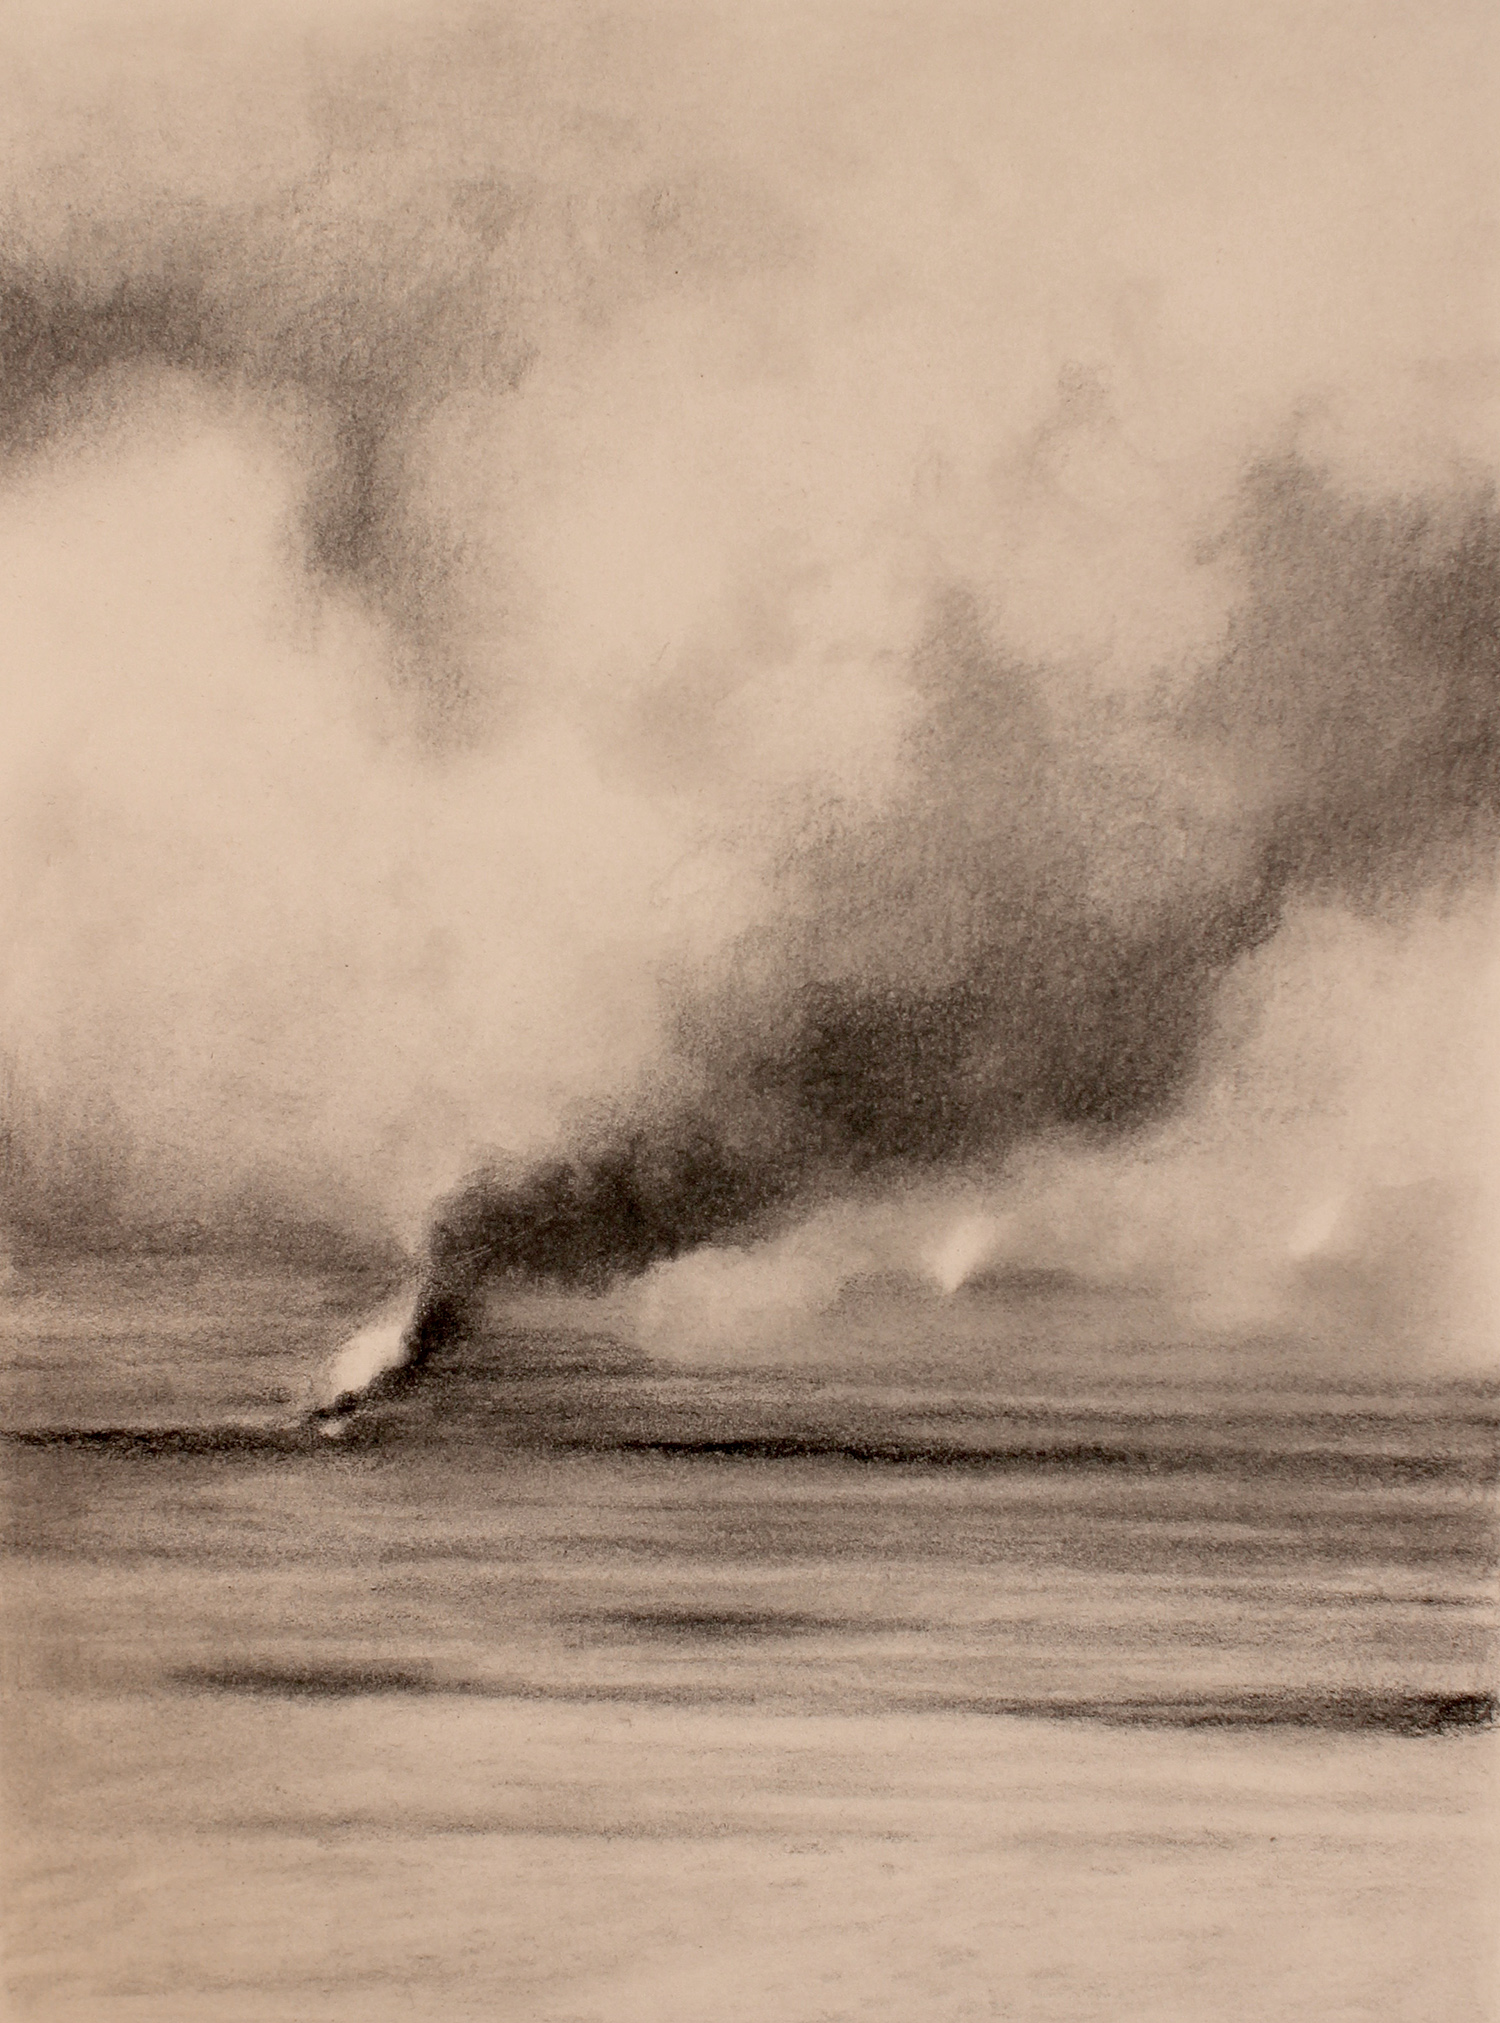 desert (iraq) 1, 2017, 10 x 15 inches, graphite on paper